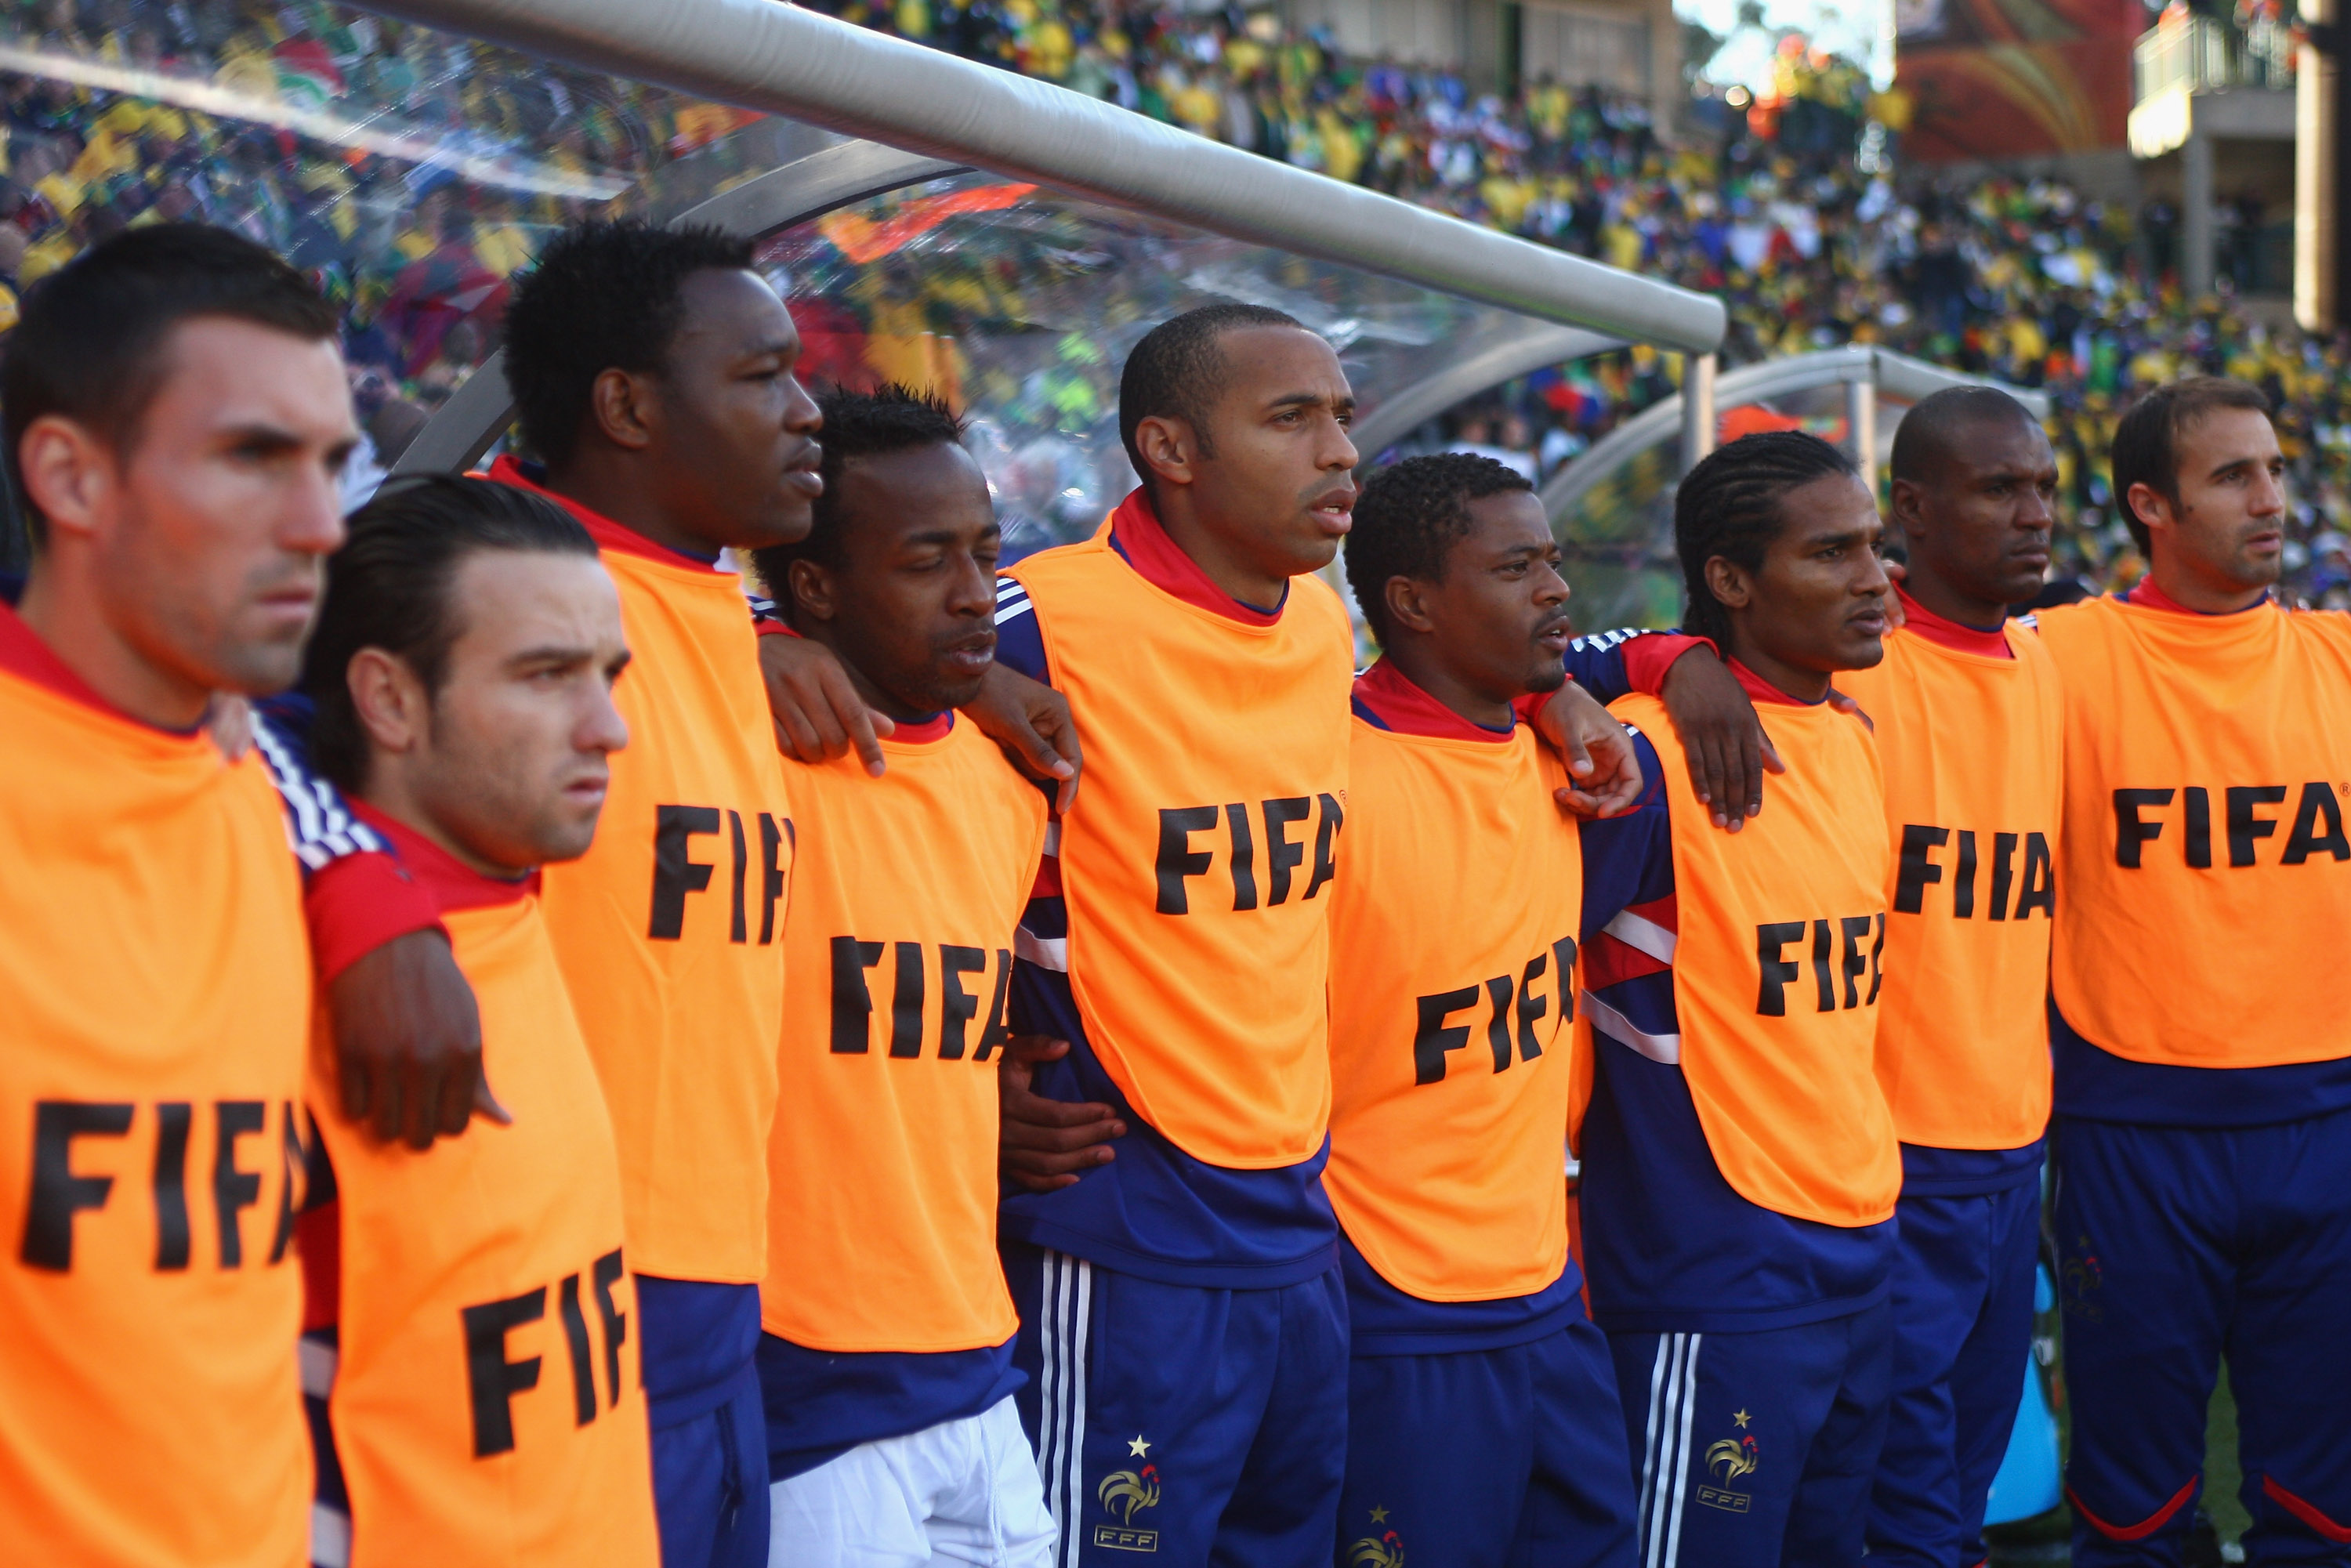 BLOEMFONTEIN, SOUTH AFRICA - JUNE 22:  Thierry Henry (c)of France  lines up during the national anthem alongside Sidney Govou (4th l), Patrice Evra (4th r) and Florent Malouda (3rd r) during the 2010 FIFA World Cup South Africa Group A match between Franc